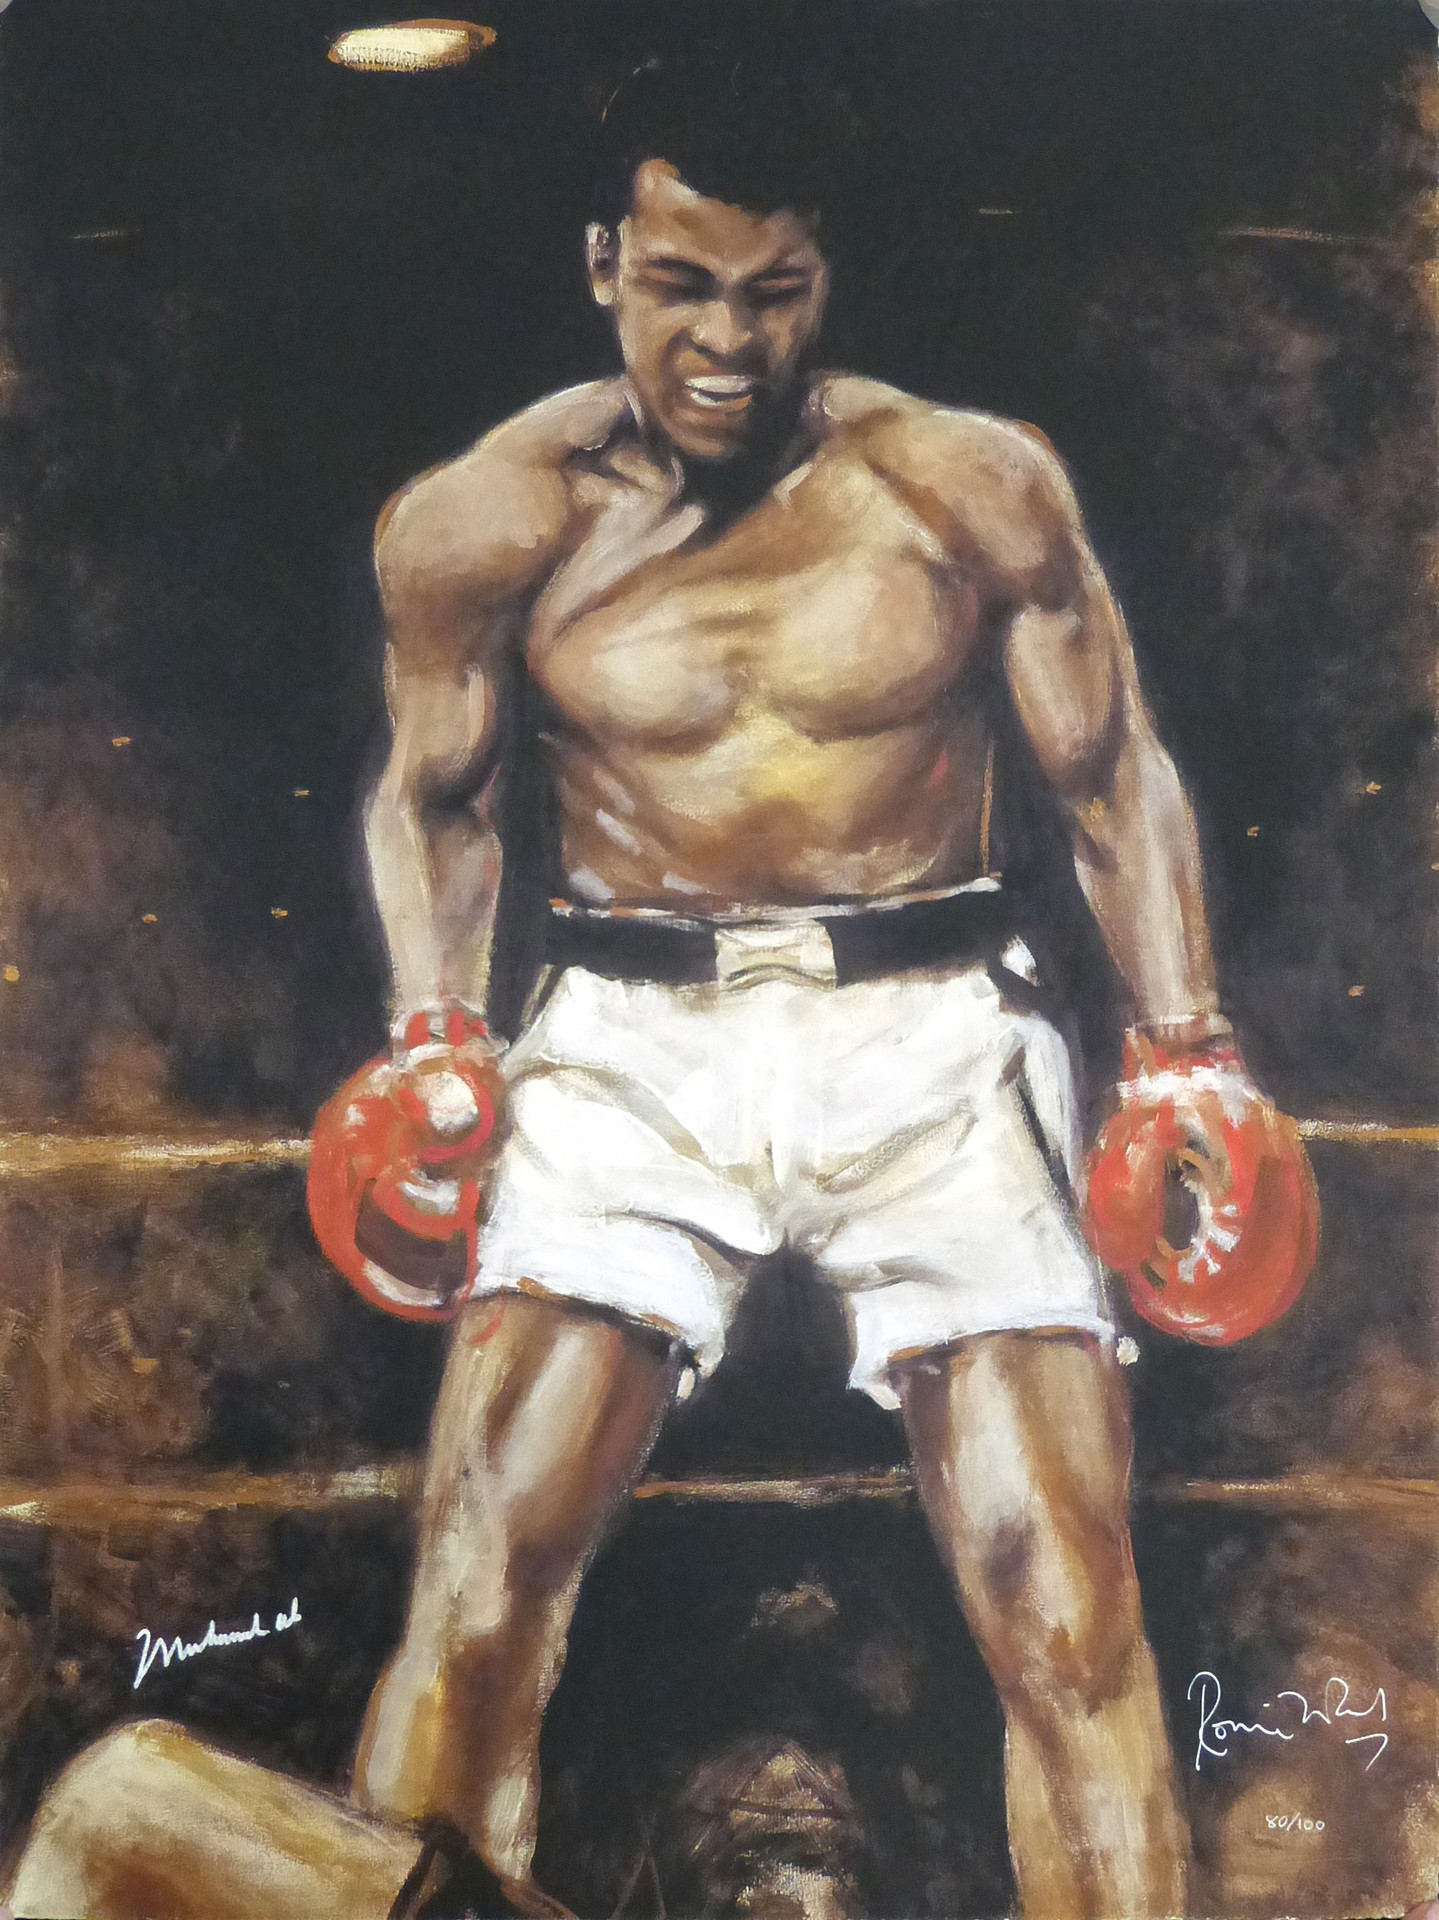 Ali  2002 28 1/2 x 21 1/2 in. 80/100 Hand-signed and numbered by artist and Muhammad Ali